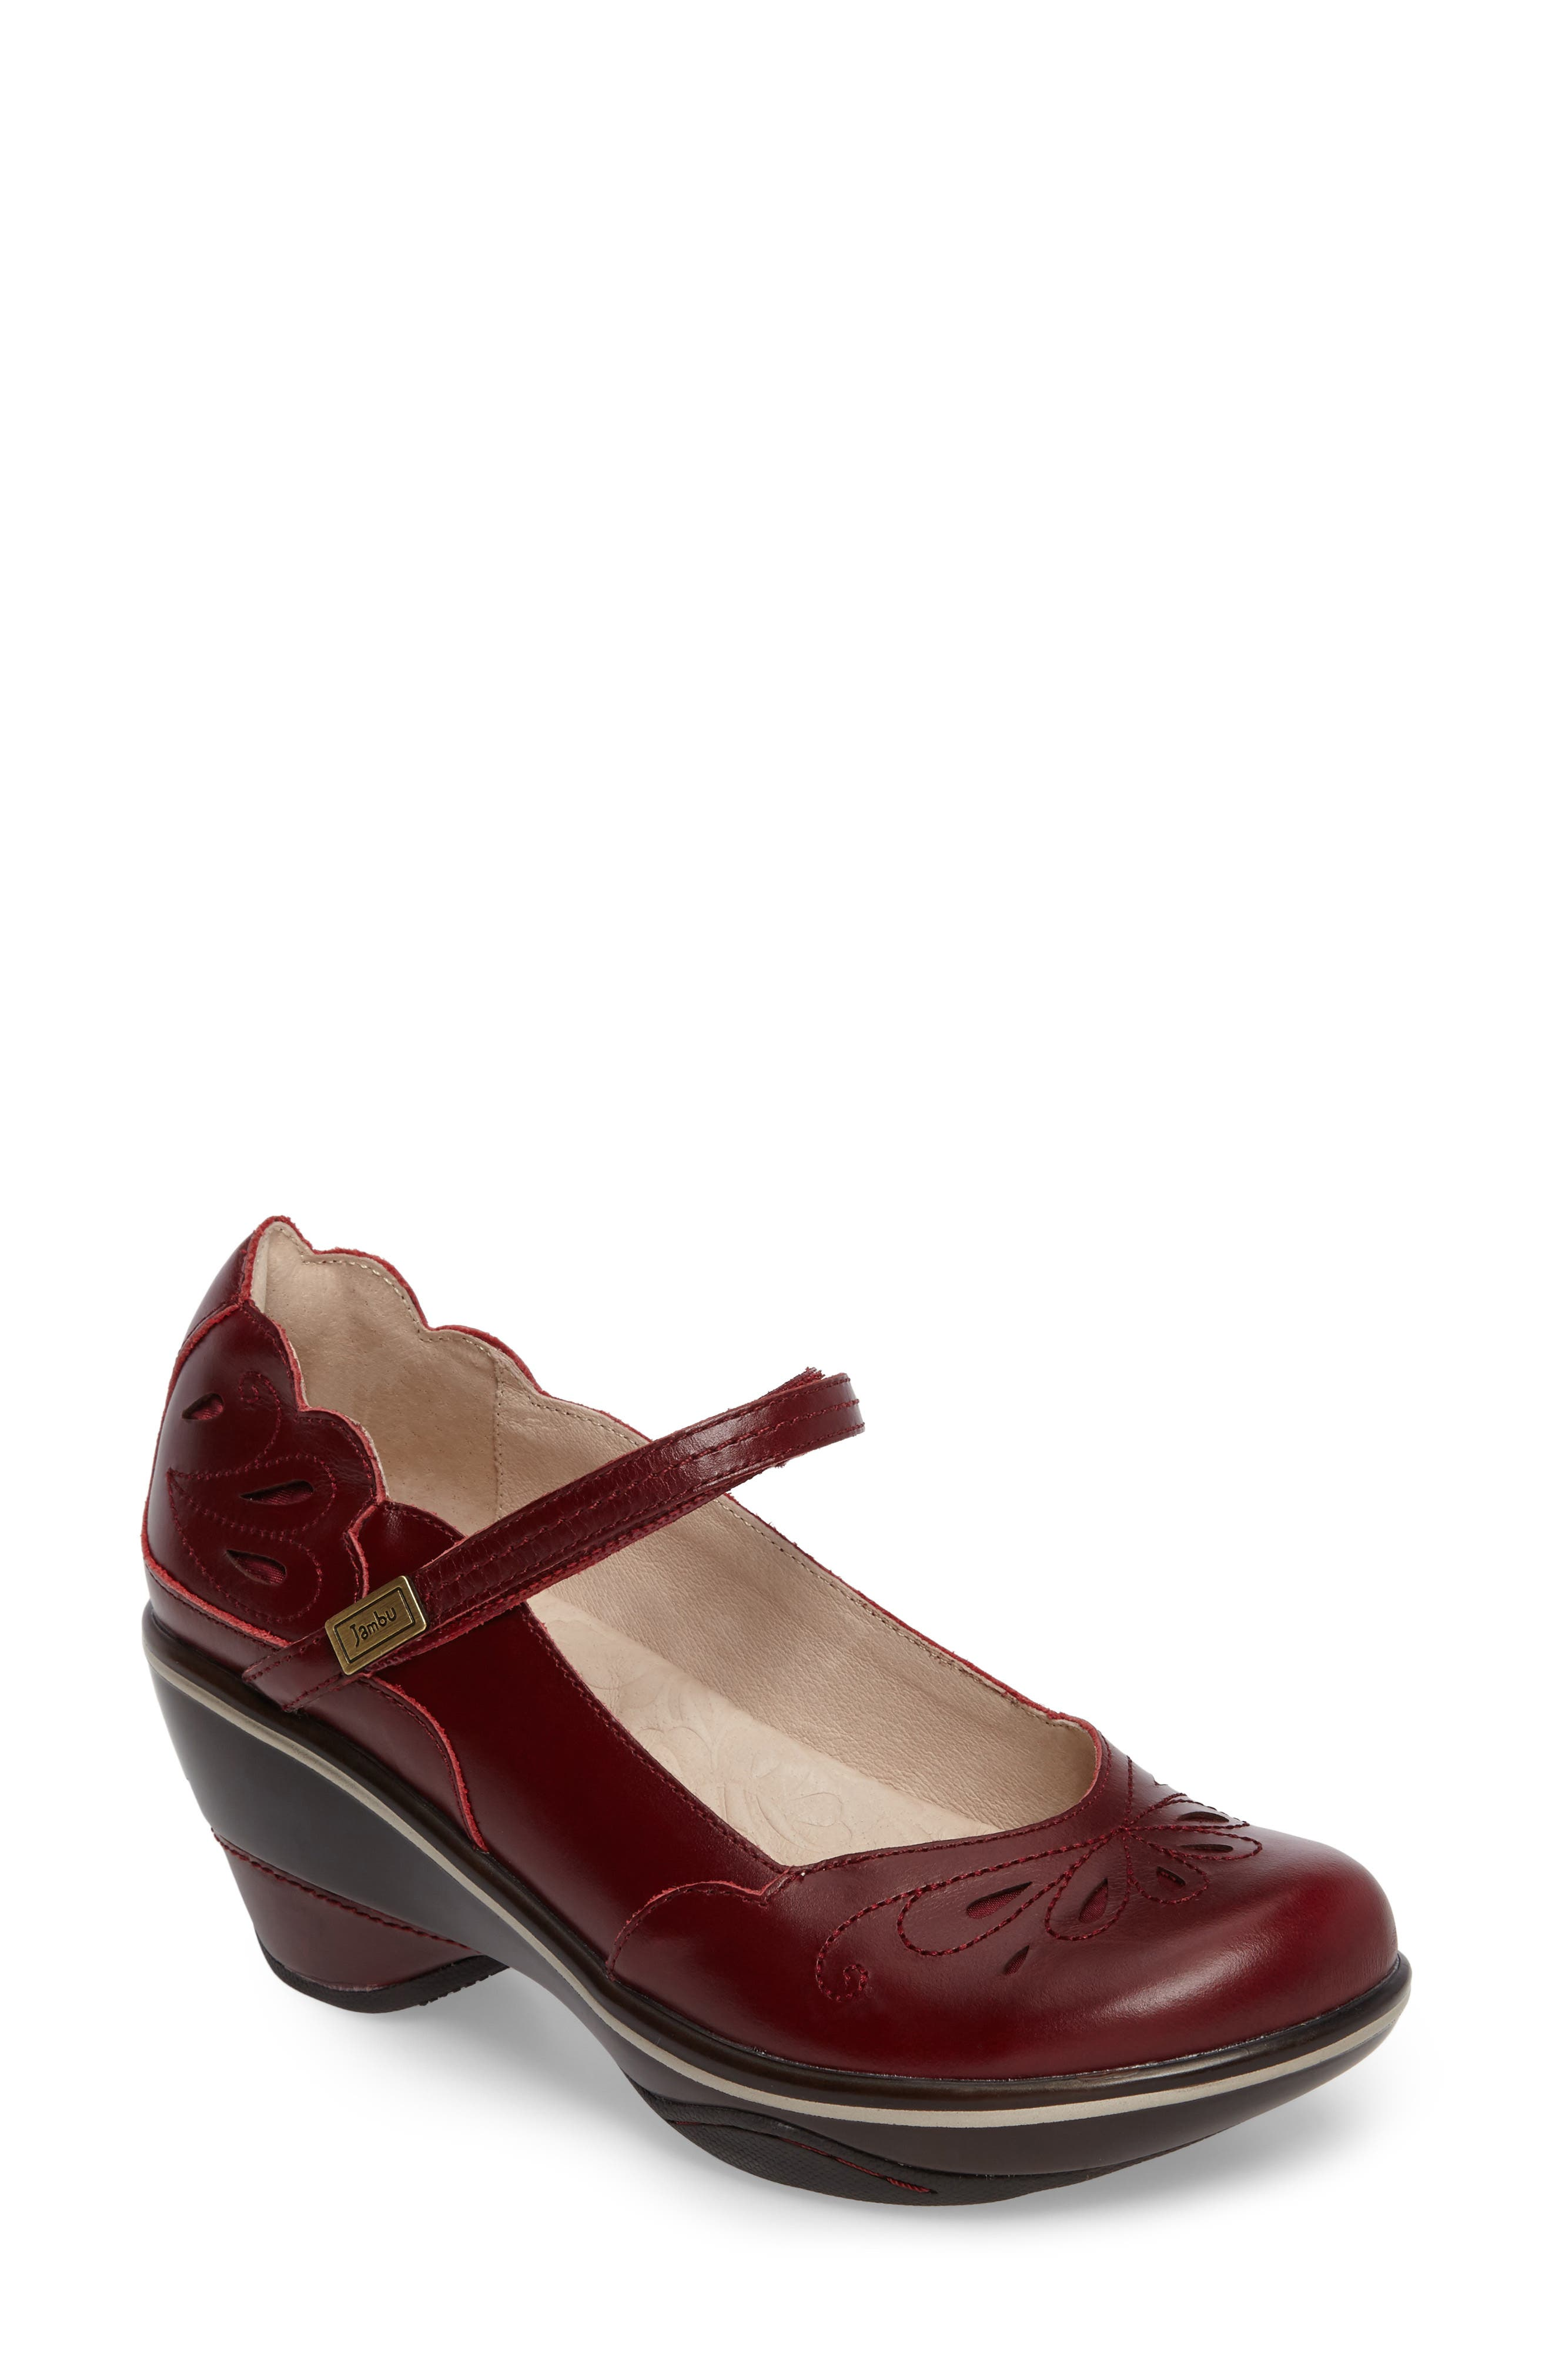 'Bombay' Pump,                             Main thumbnail 1, color,                             Red Leather